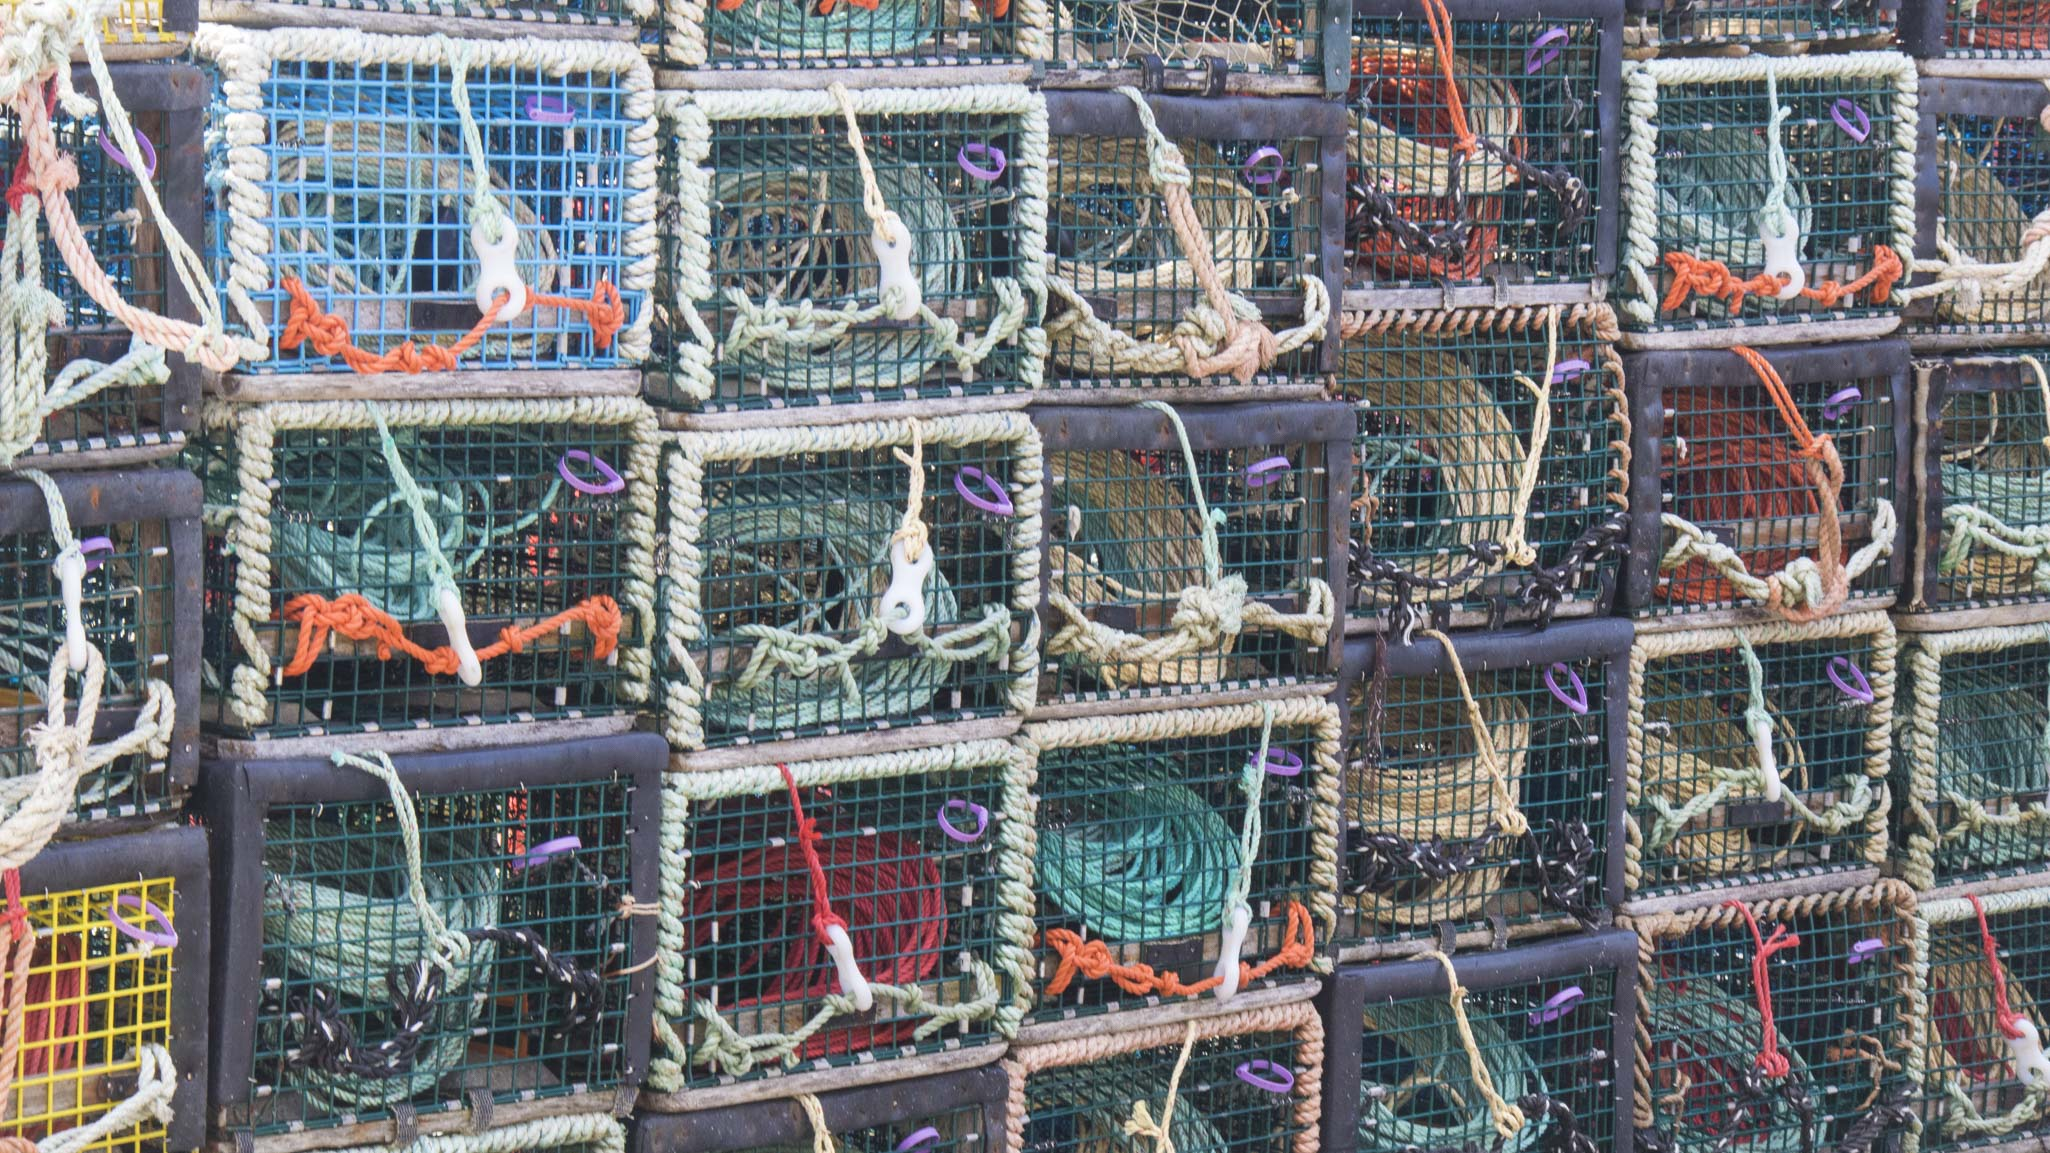 0718 Lobster Traps (1 of 1)